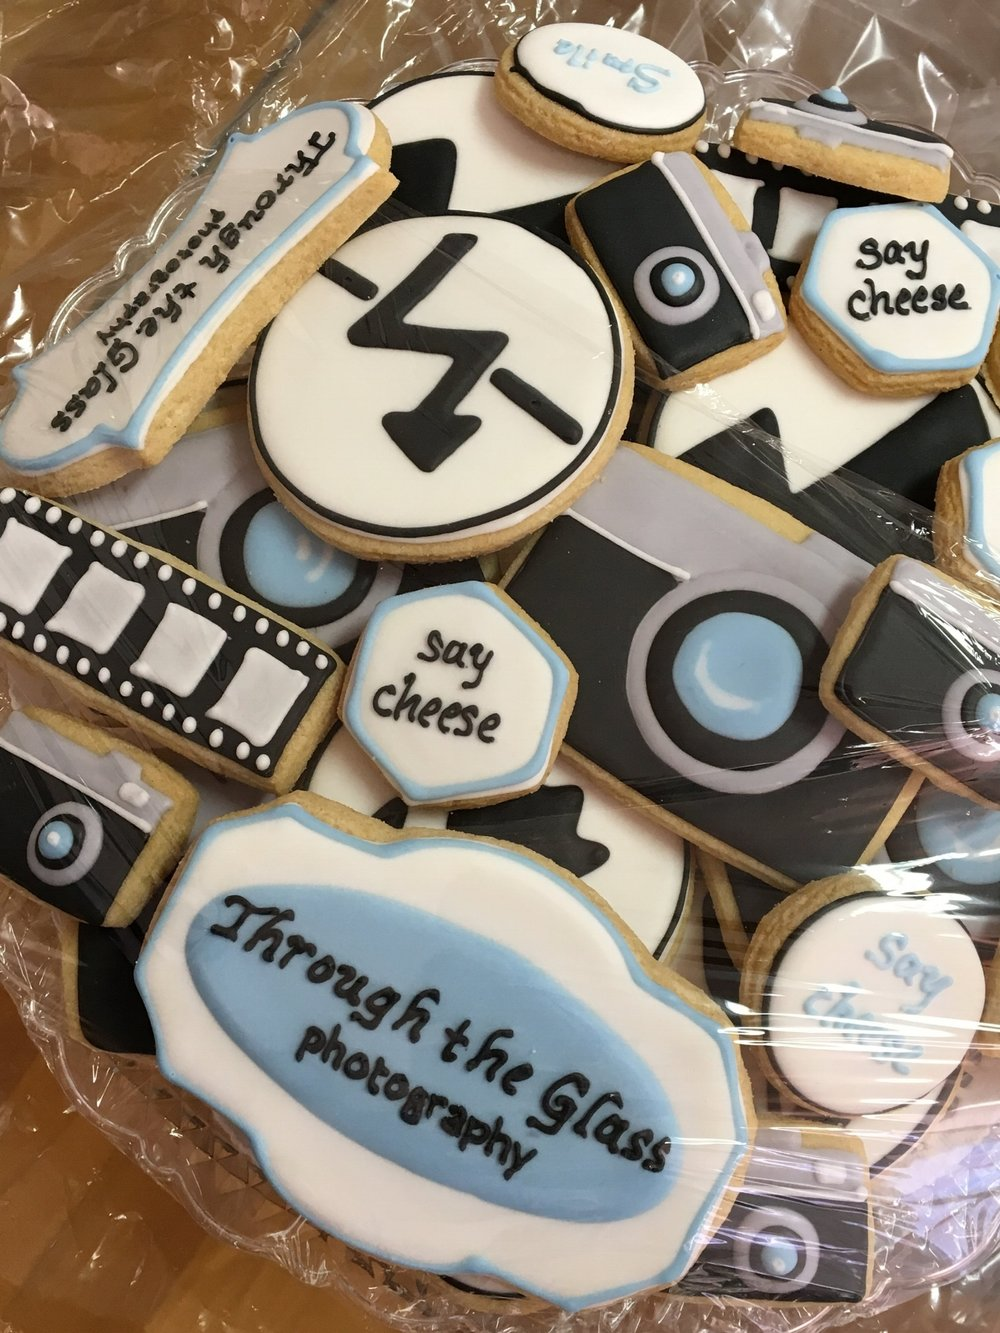 * Cookies created by Kaitydid's Creations located in Mount Airy, NC.